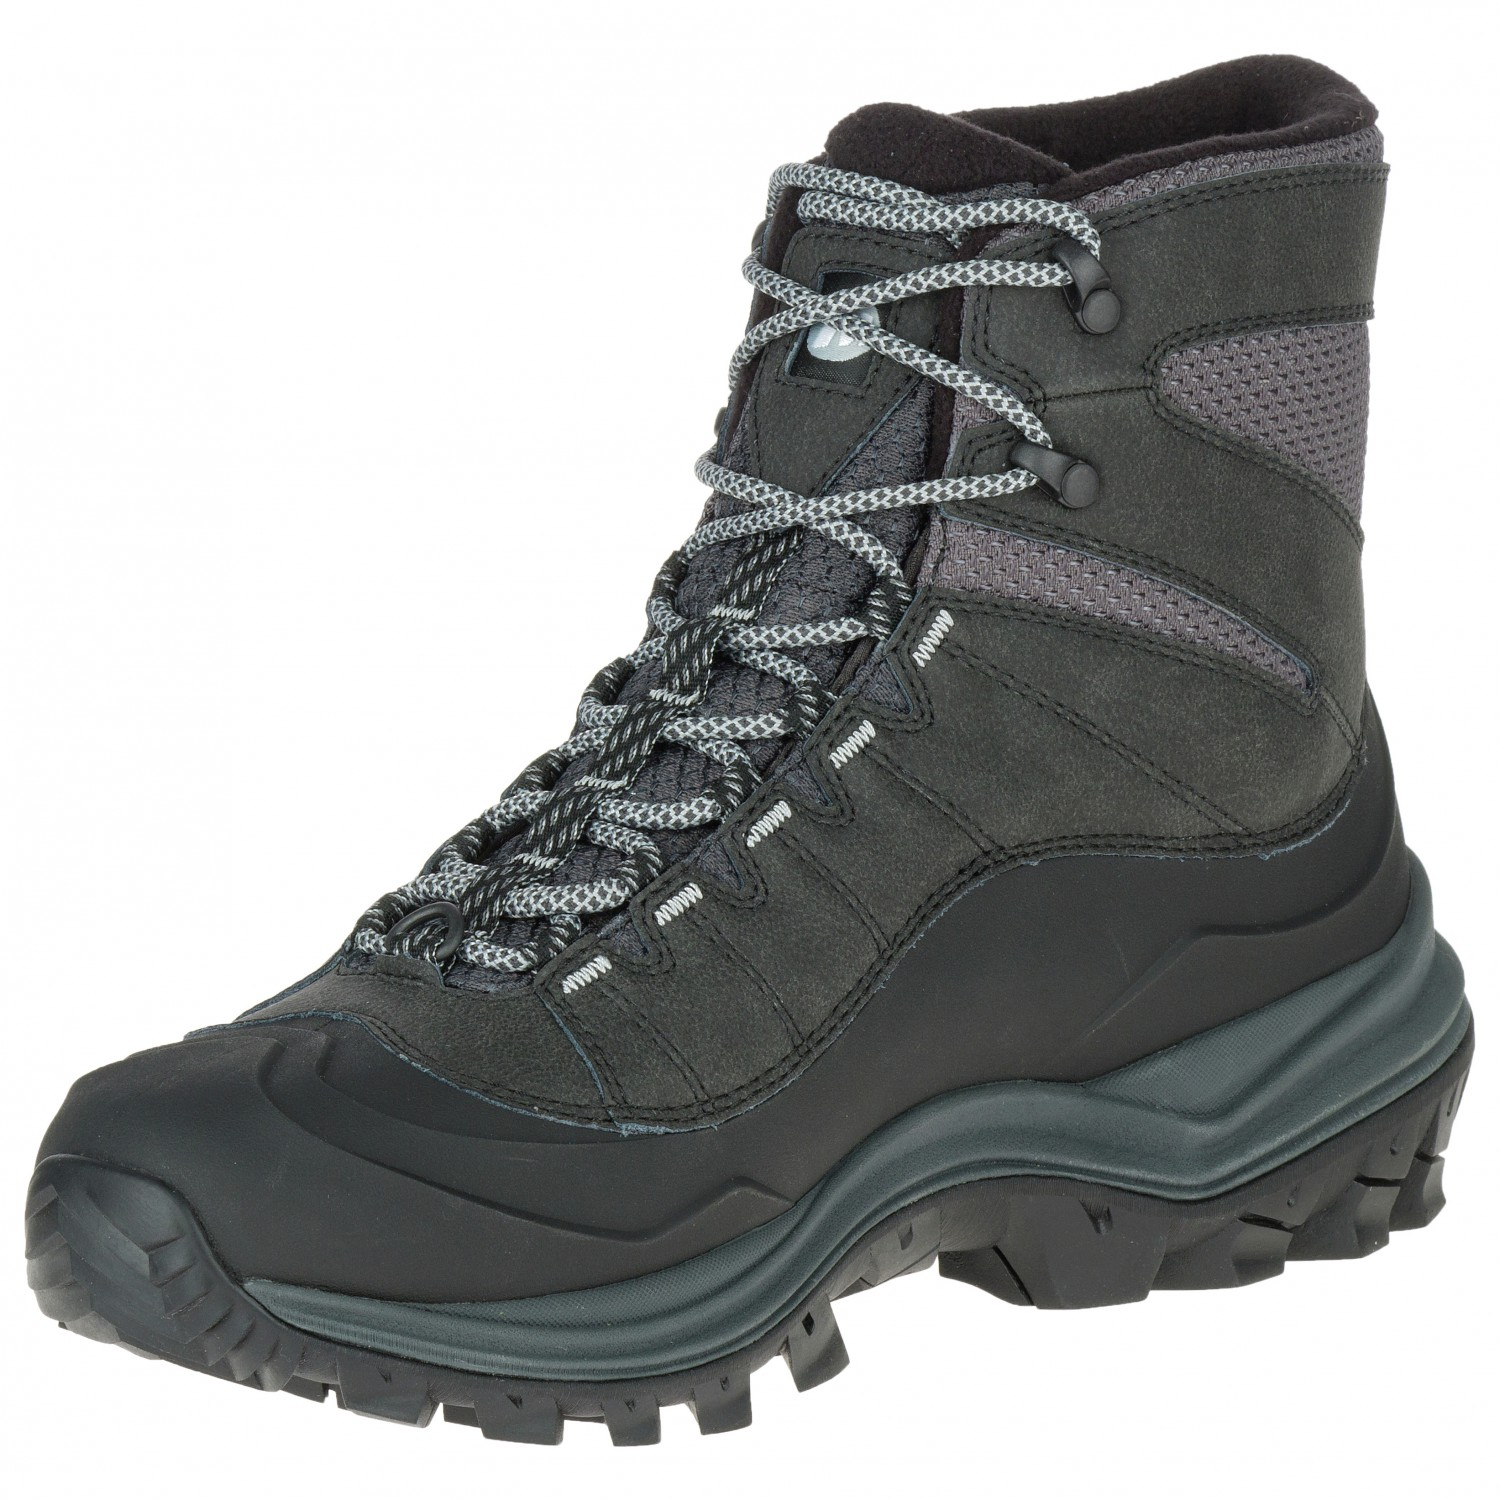 Merrell Thermo Chill Mid Shell Waterproof Winter Boots